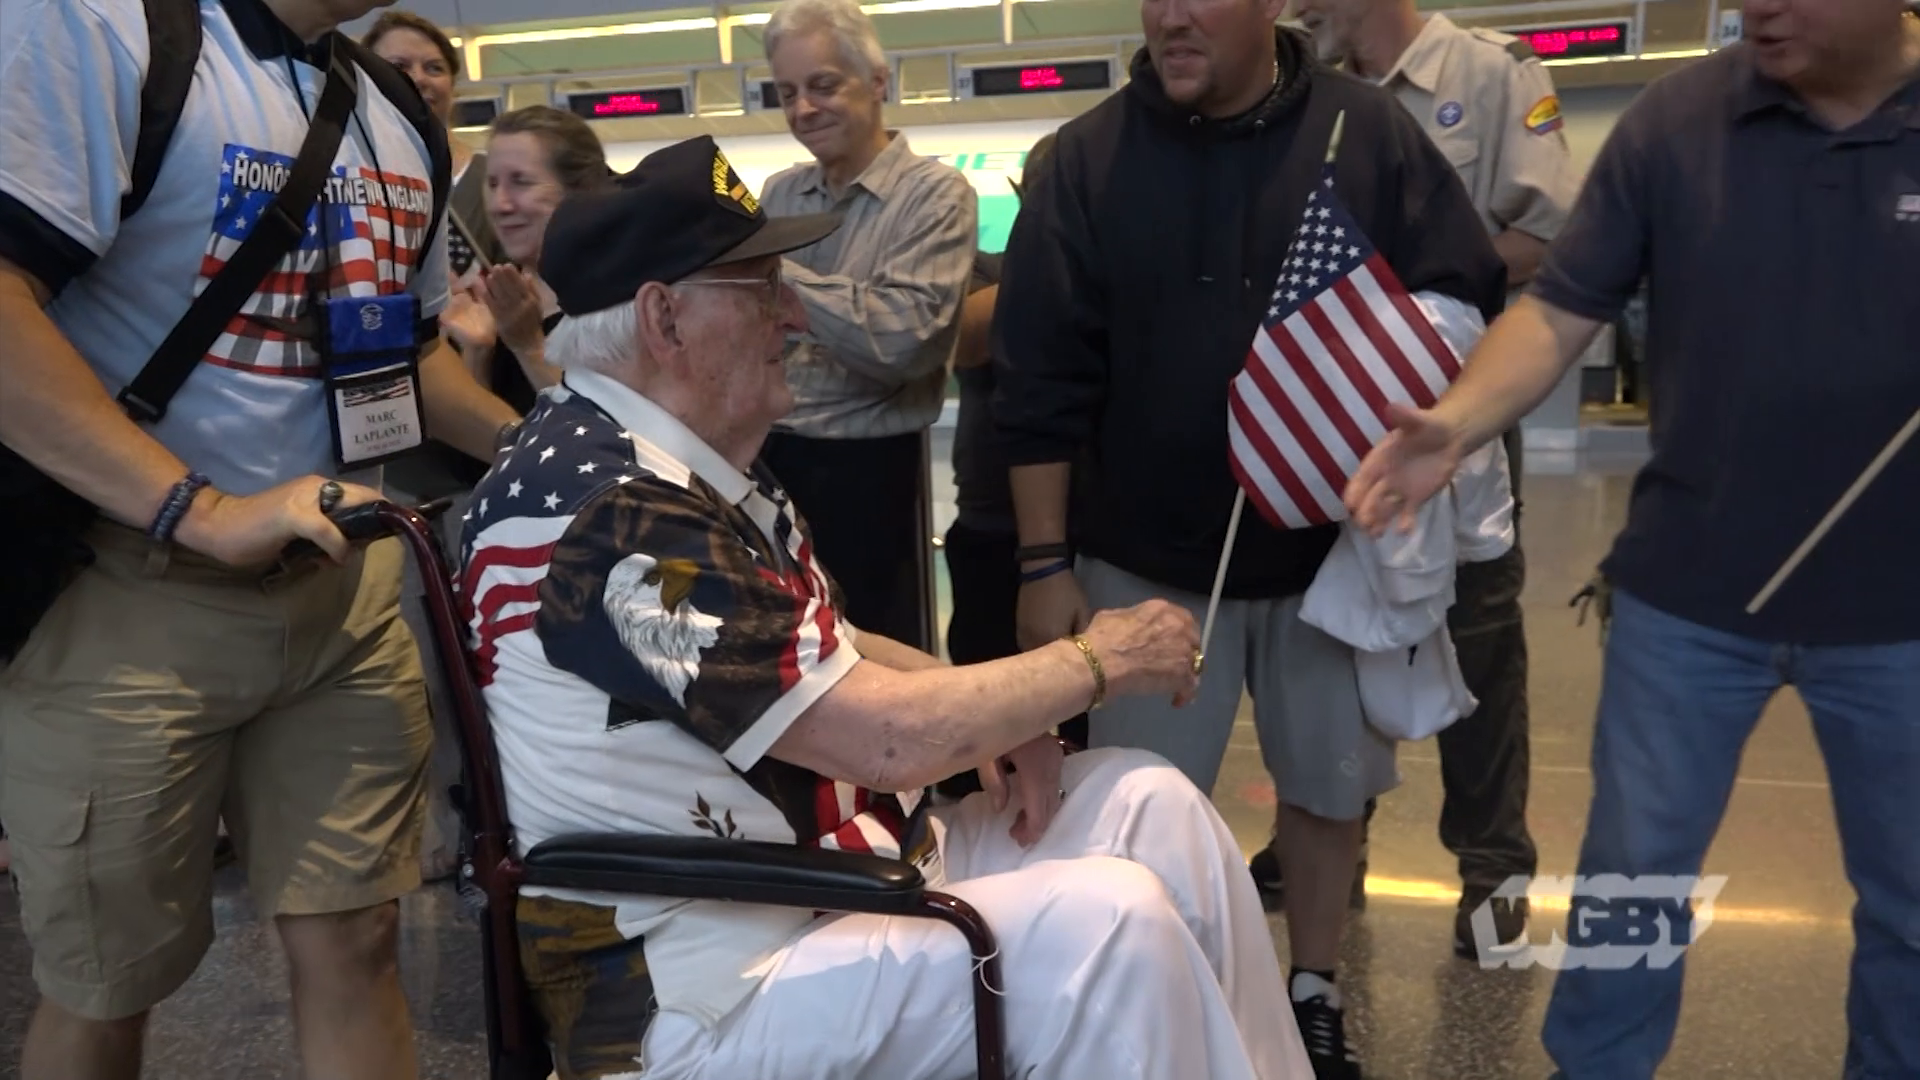 Join pilot Joe Byron on an Honor Flight, a special flight that brings WWII veterans into Washington DC to view the war memorials honoring their sacrafice.